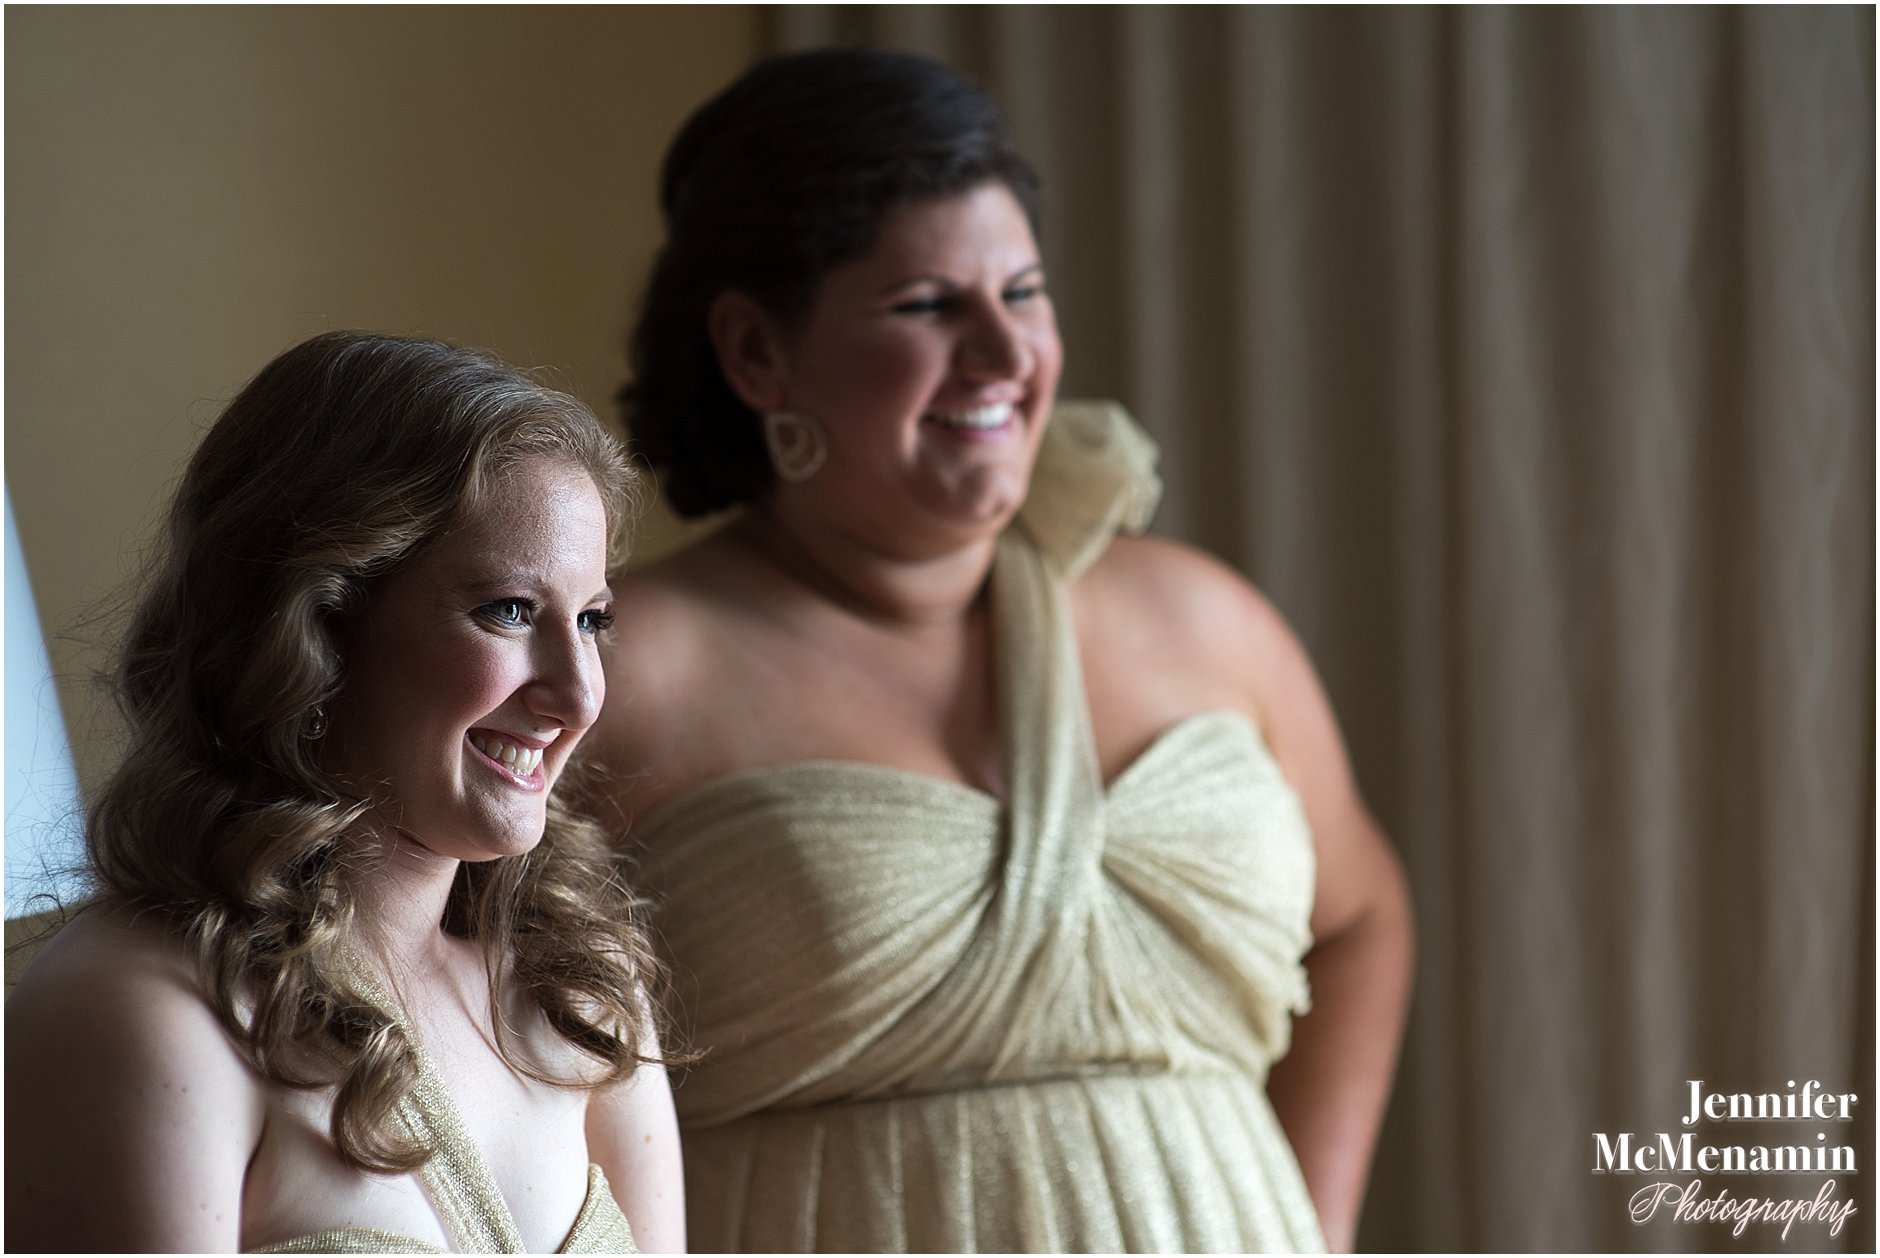 004-Jennifer-McMenamin-Photography-Baltimore-Waterfront-Marriott-wedding_0003